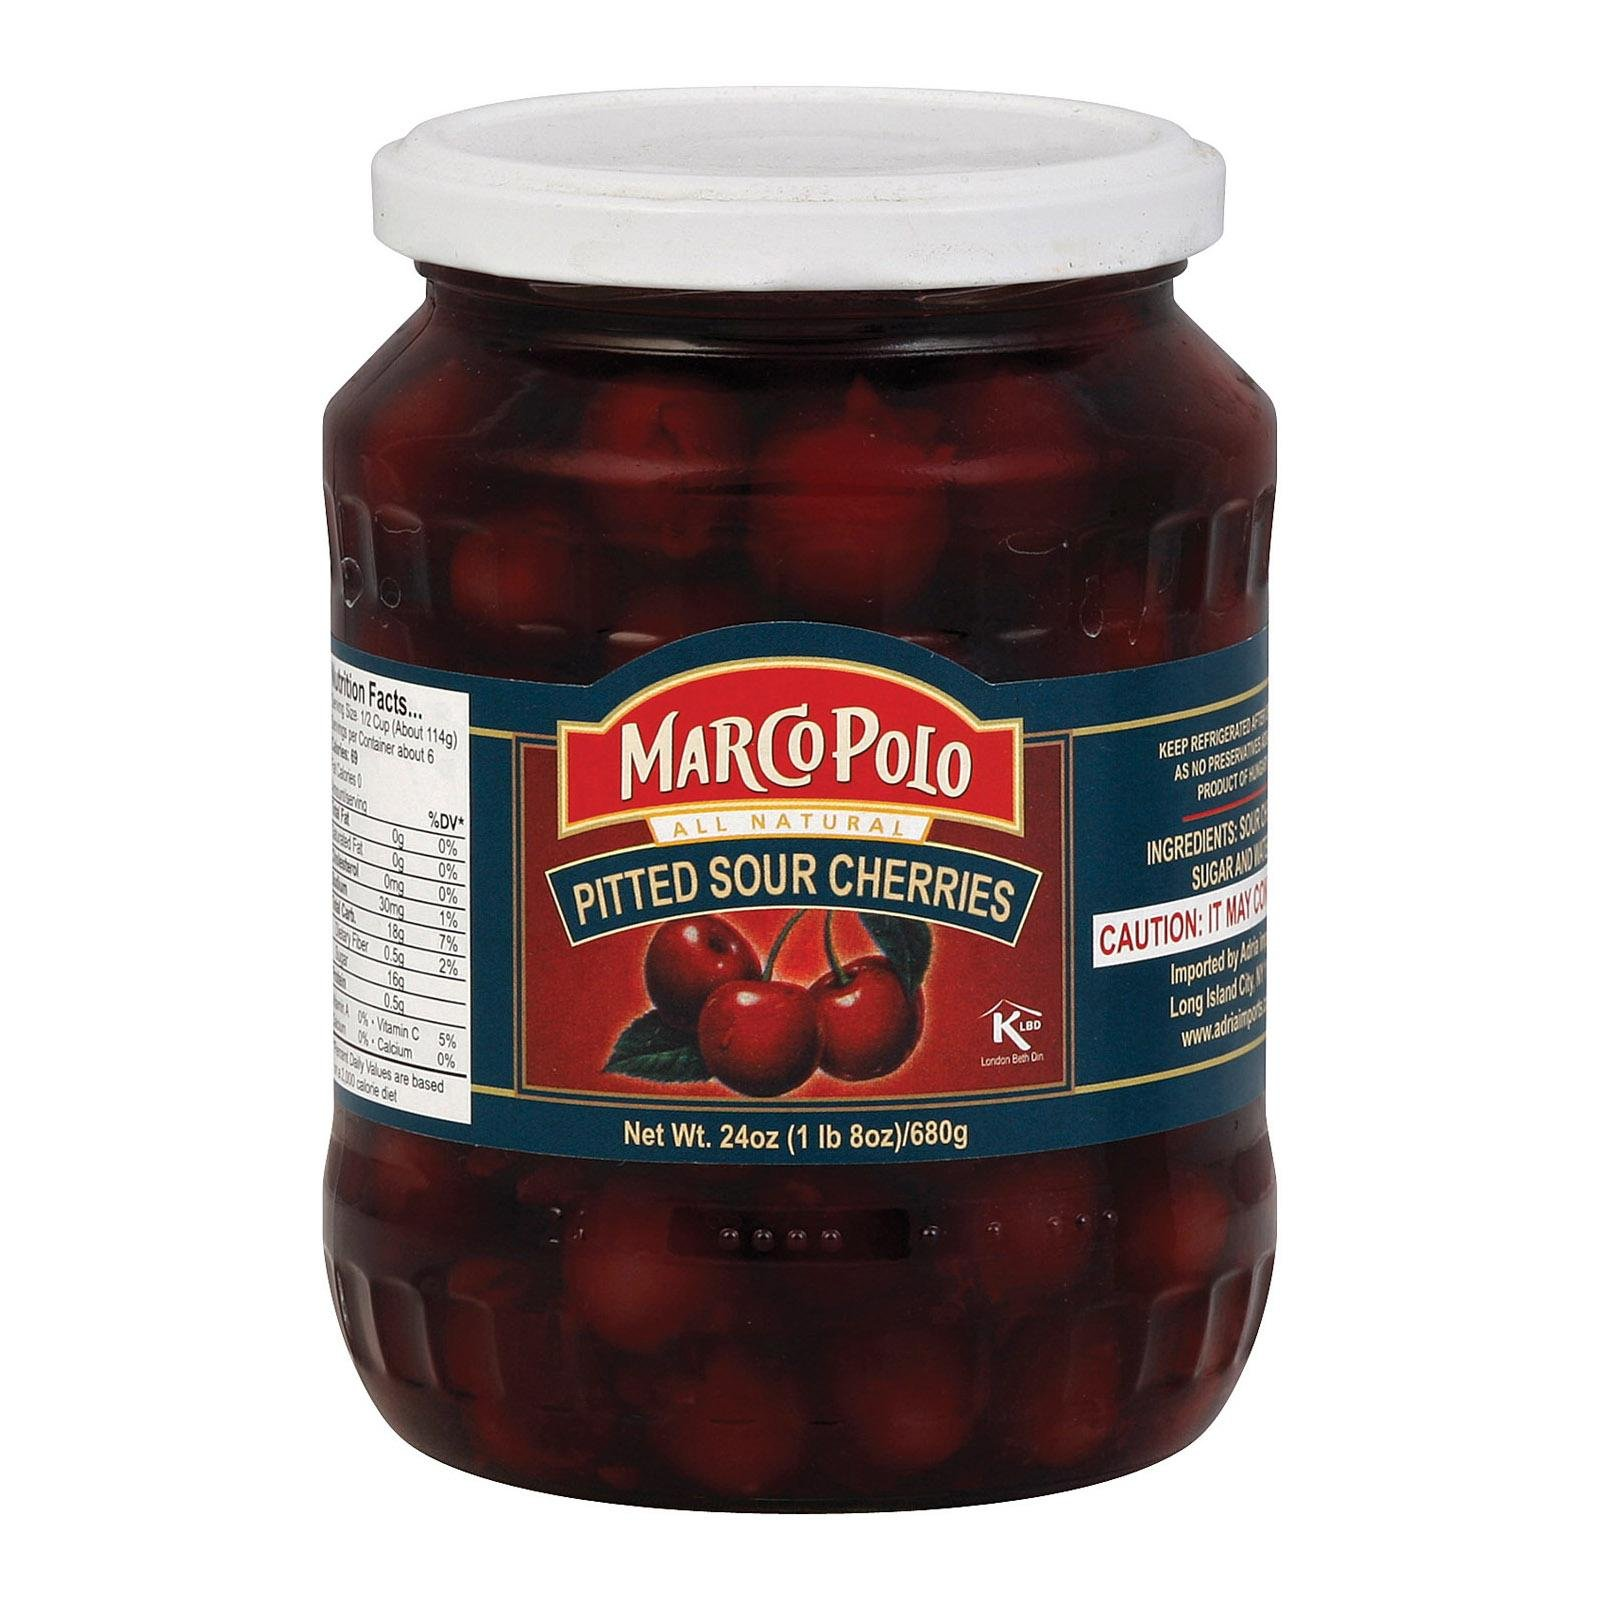 Marco Polo Pitted Sour Cherries, 24 oz